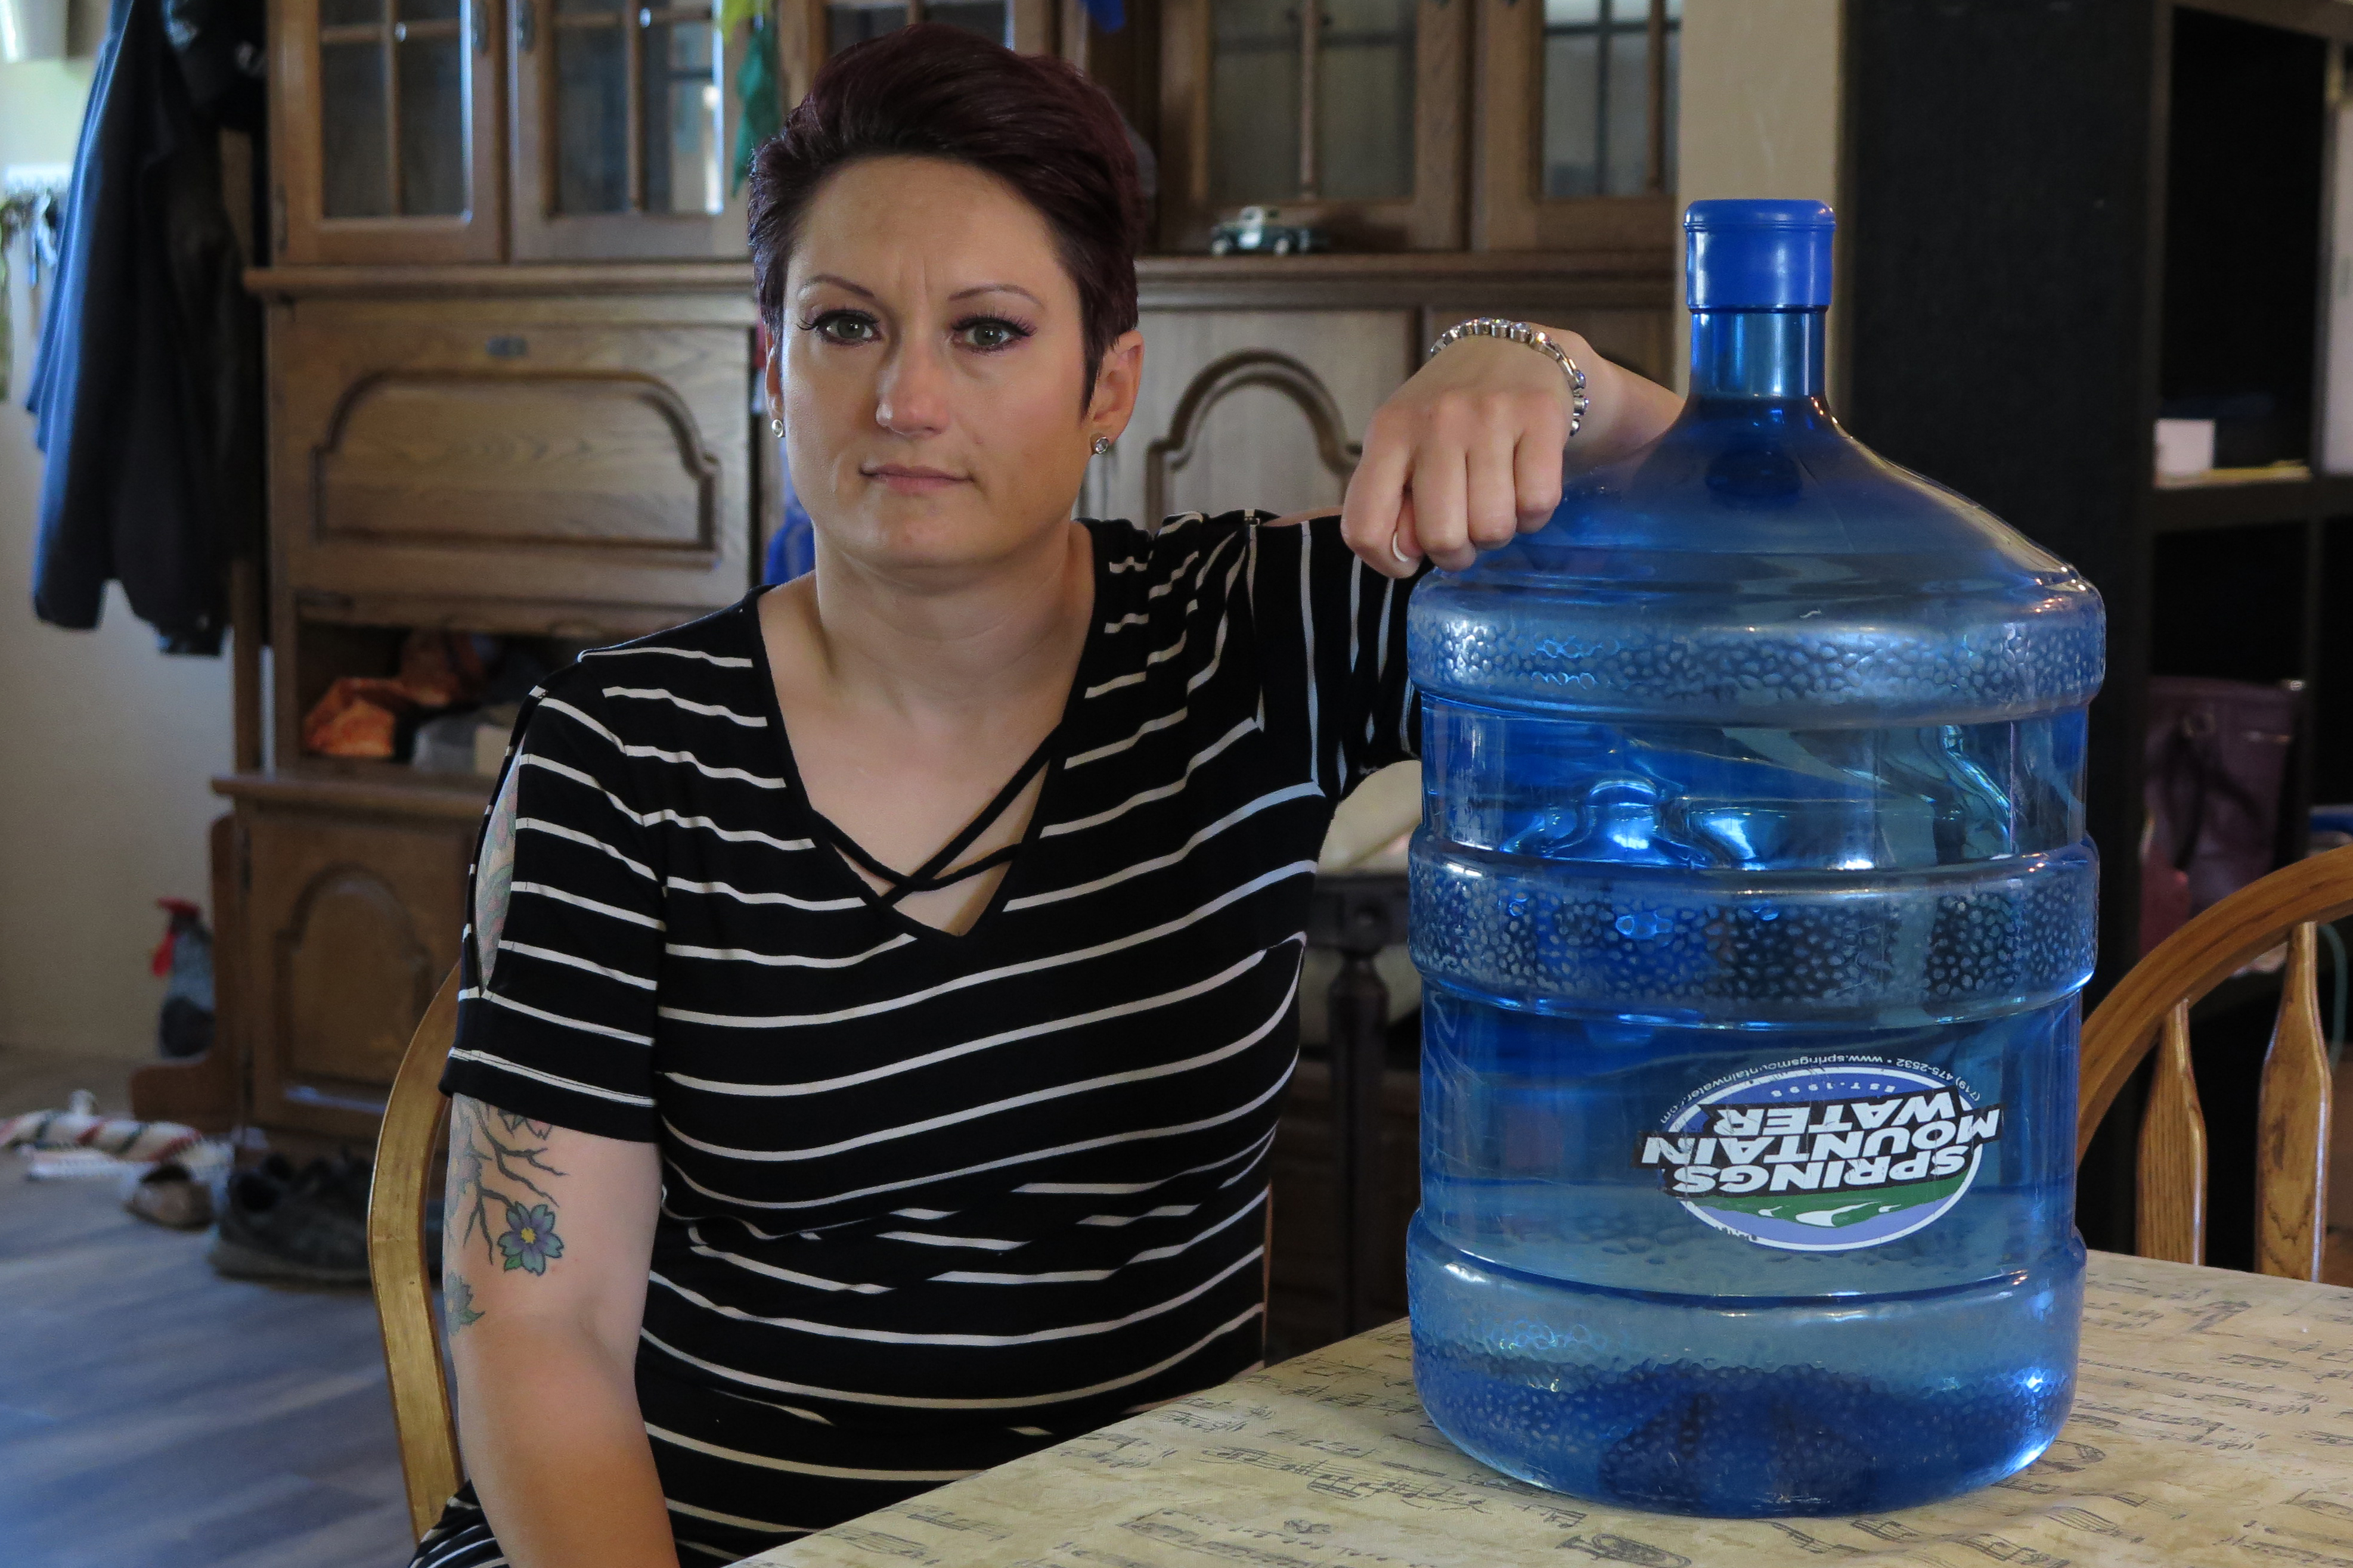 Caption: El Paso County, Col. resident Liz Rosenbaum spends about $70 per month on bottled drinking water rather than drink from her tap., Credit: Dan Boyce / American Homefront